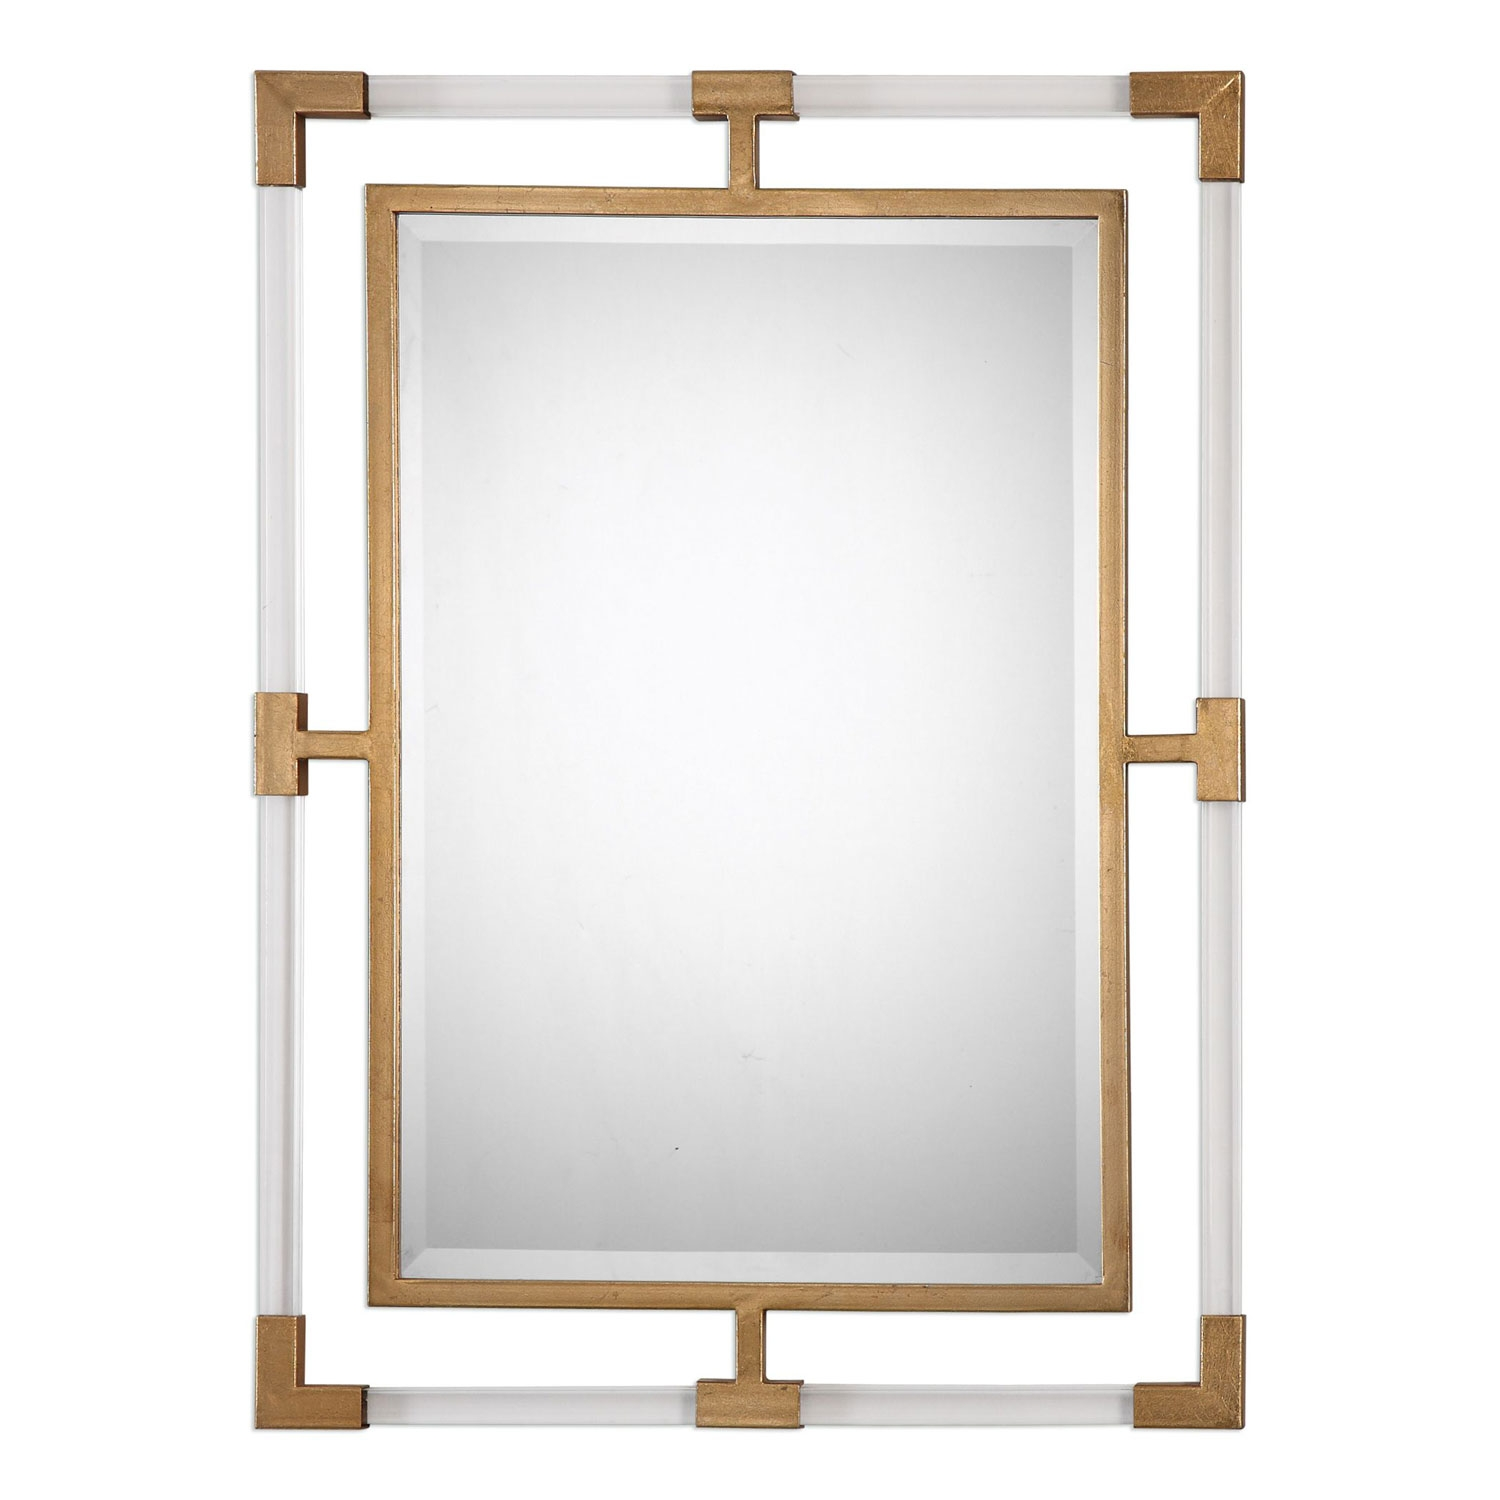 Balkan Modern Gold Wall Mirror Uttermost Rectangle Mirrors Home Decor Within Modern Gold Mirror (Image 2 of 15)